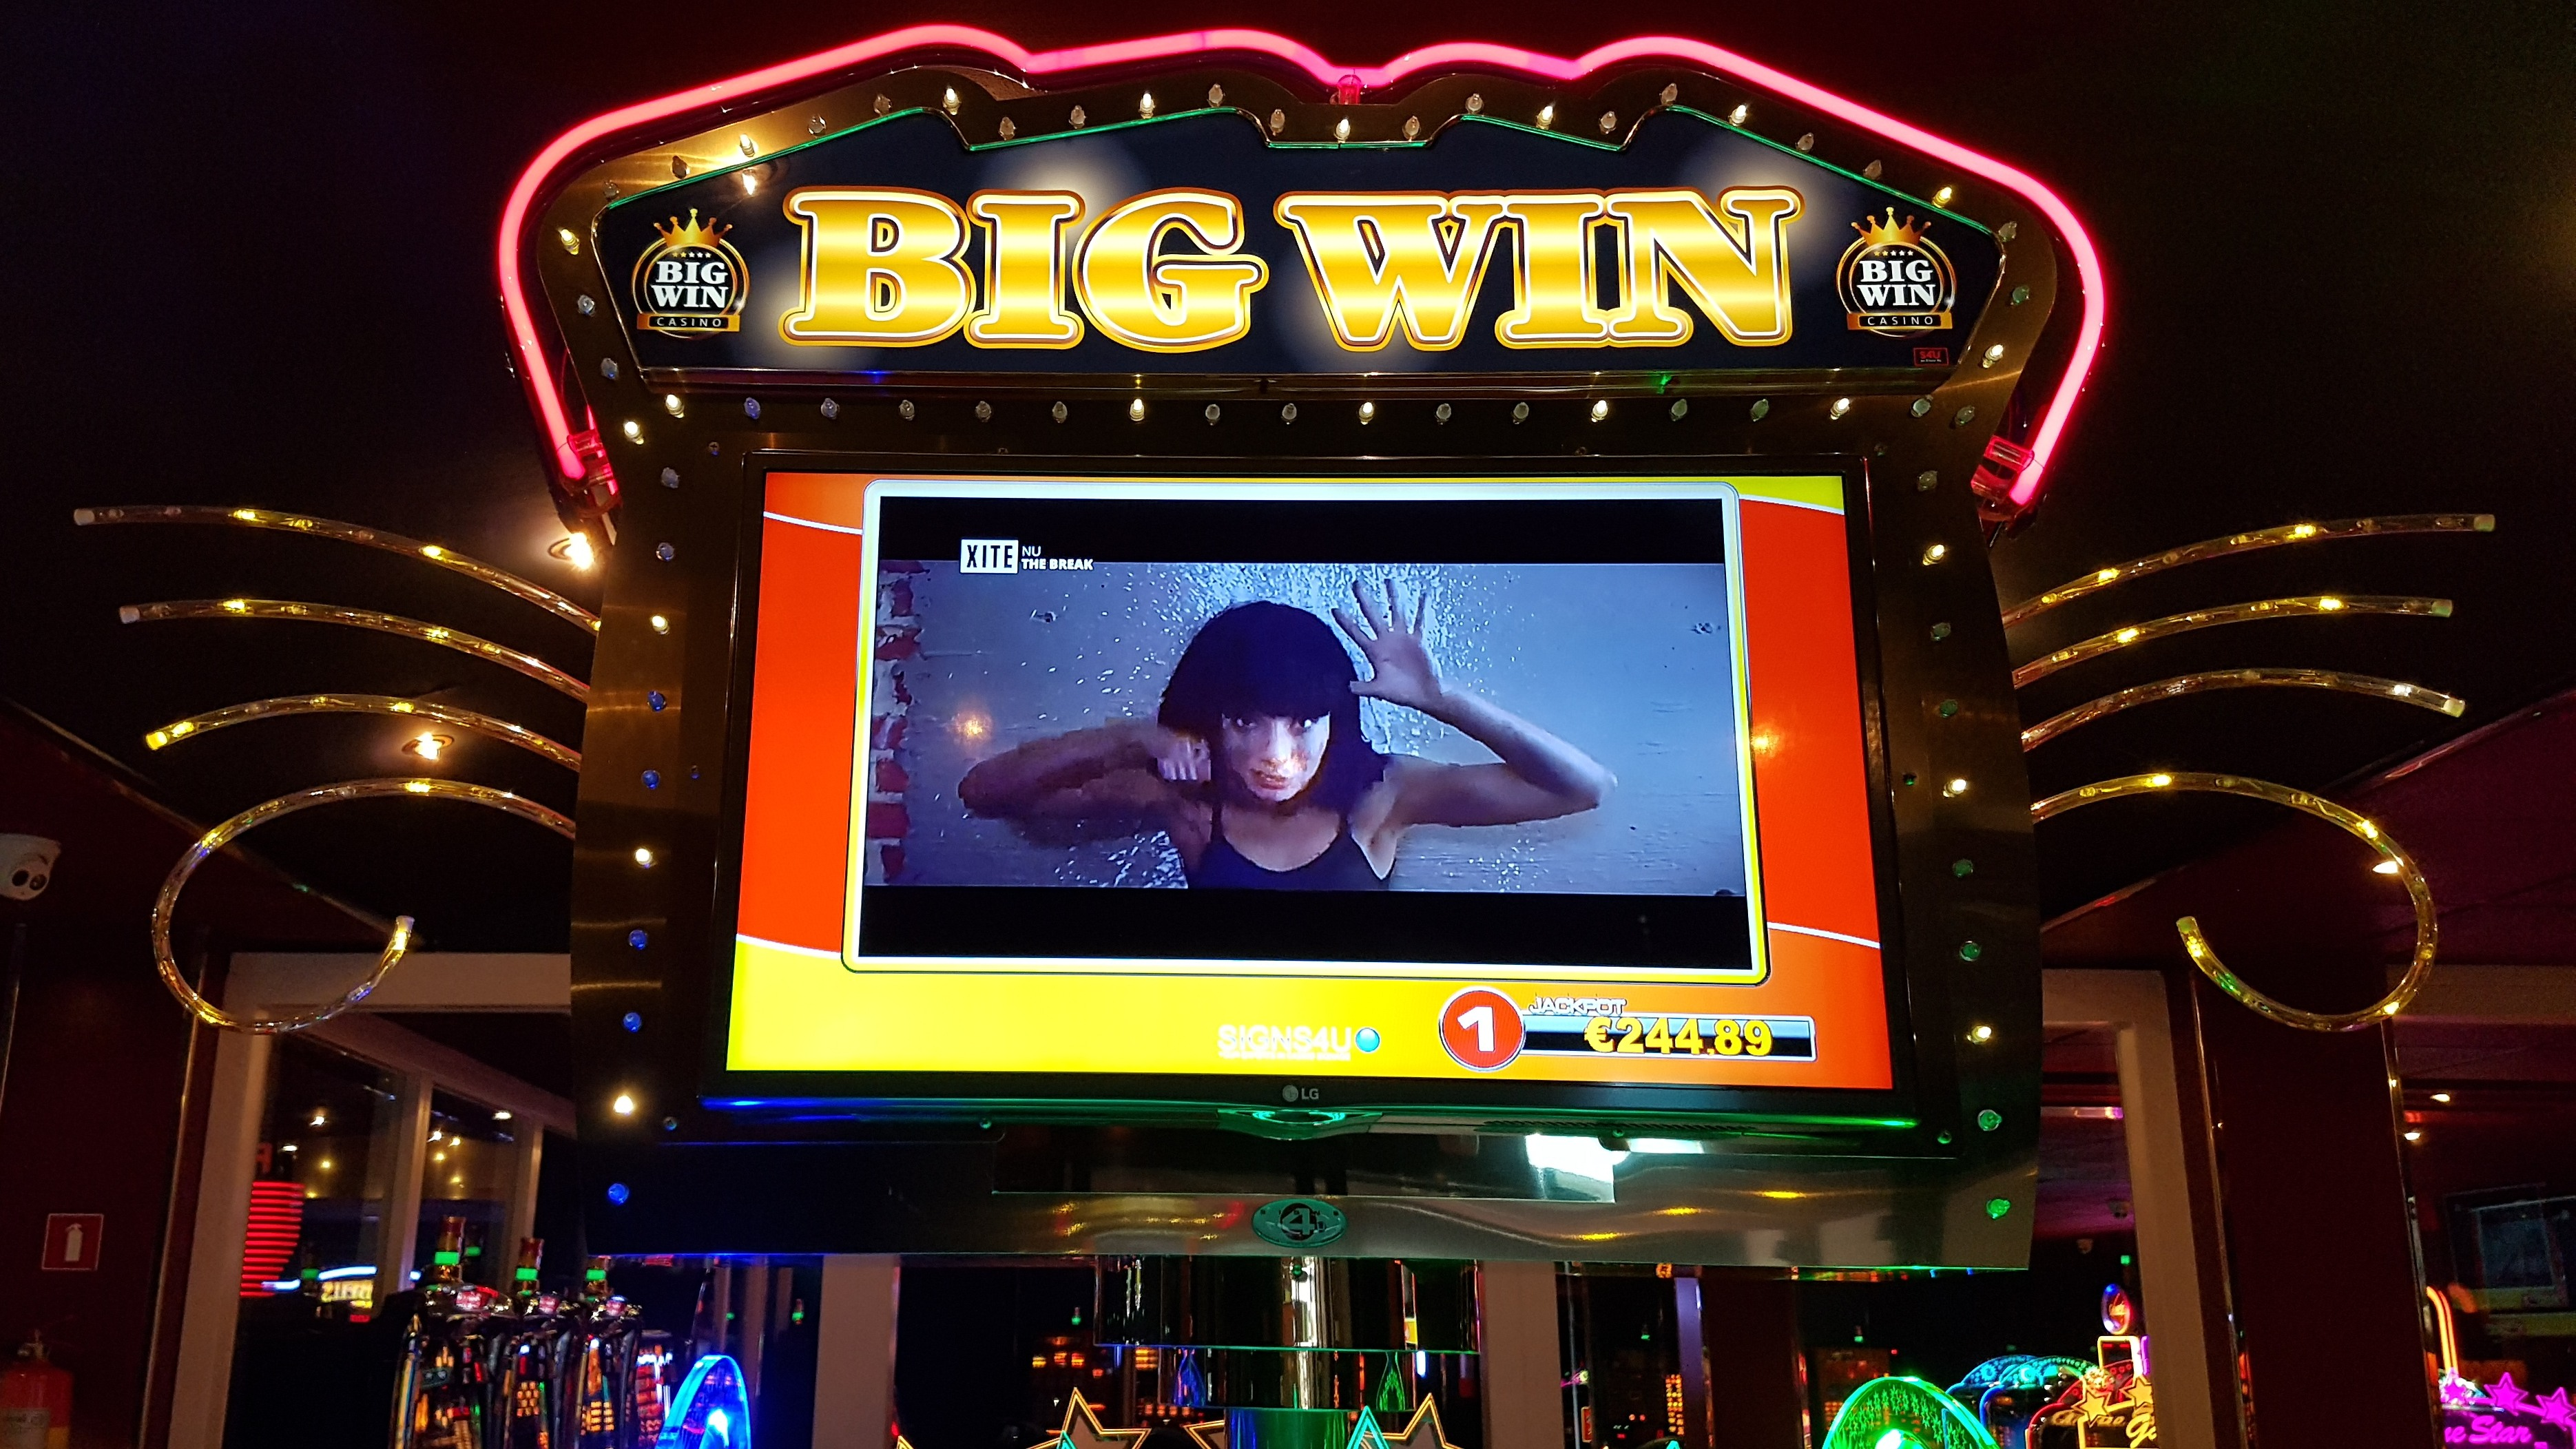 Big wins at casino